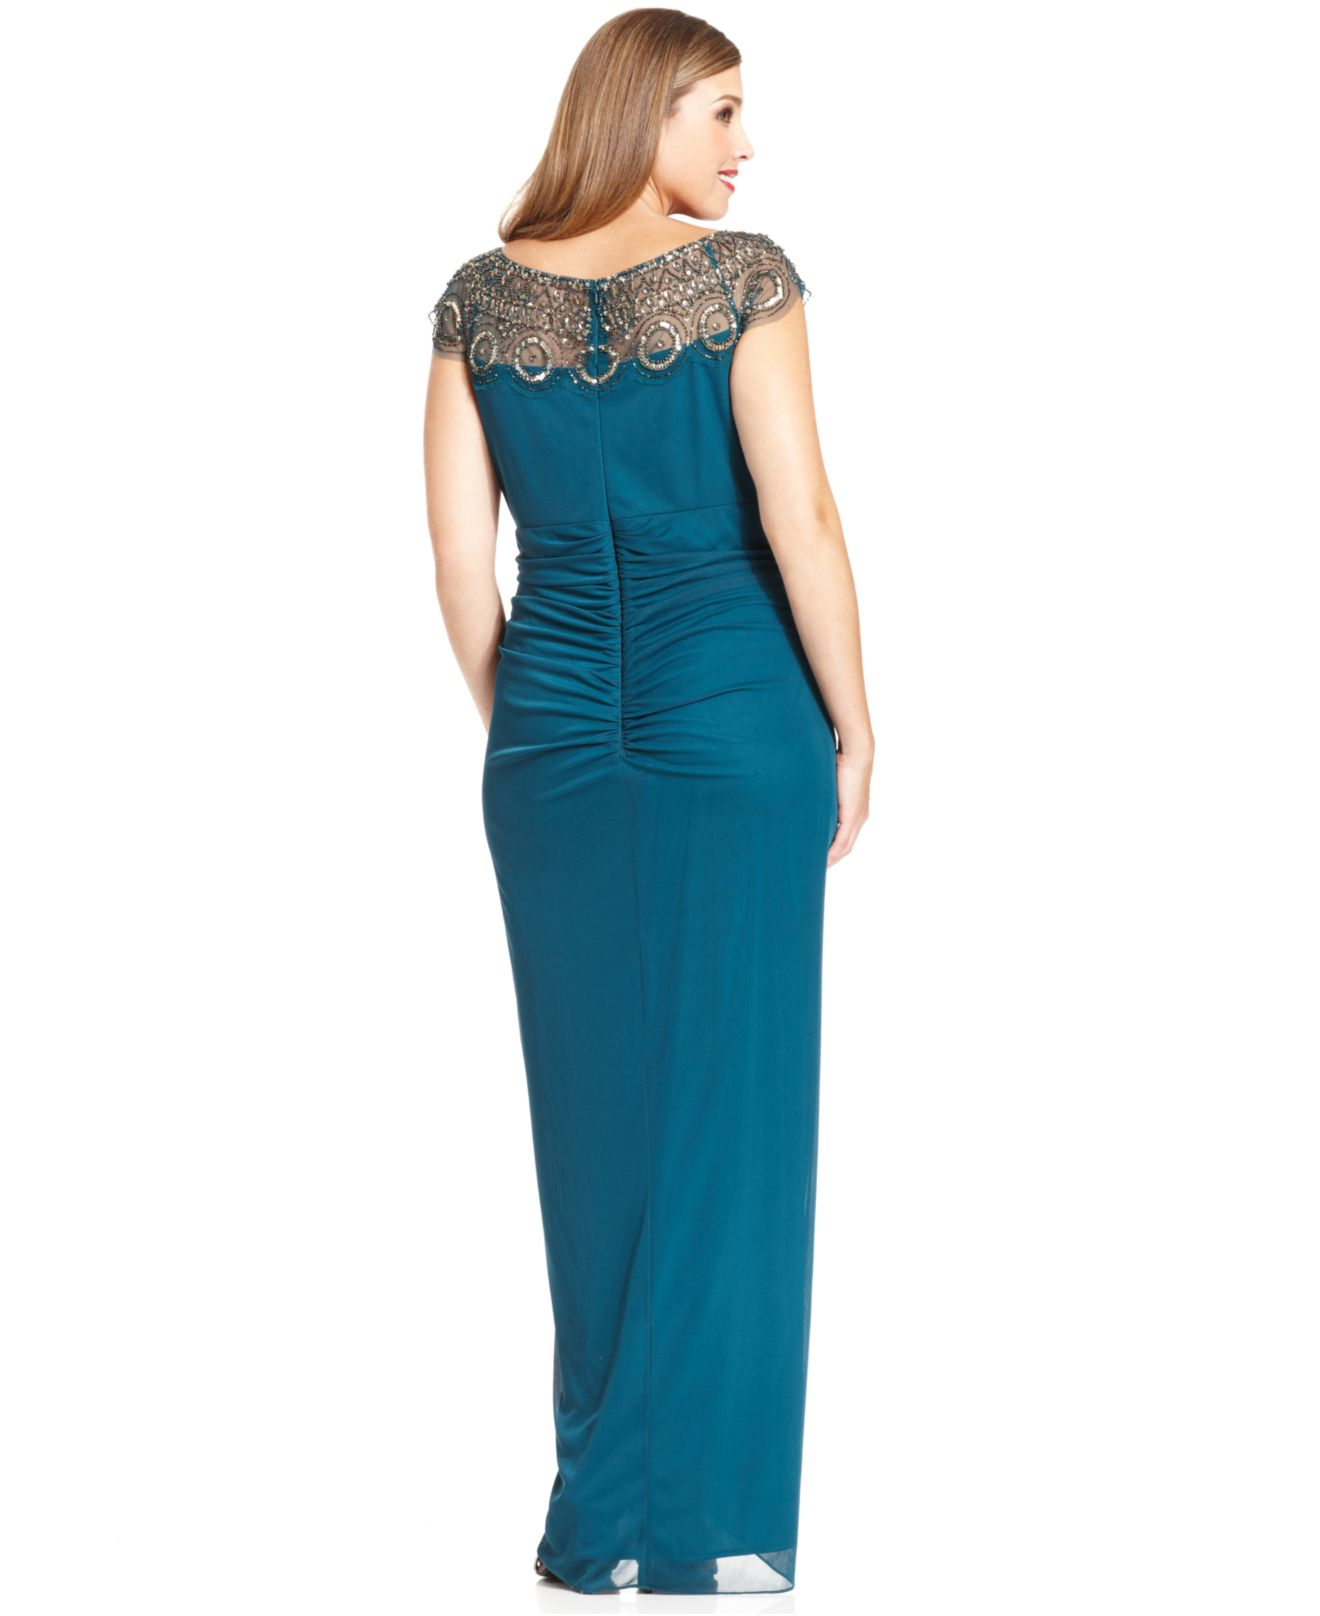 Lyst - Xscape Plus Size Cap-sleeve Illusion Beaded Gown in Blue